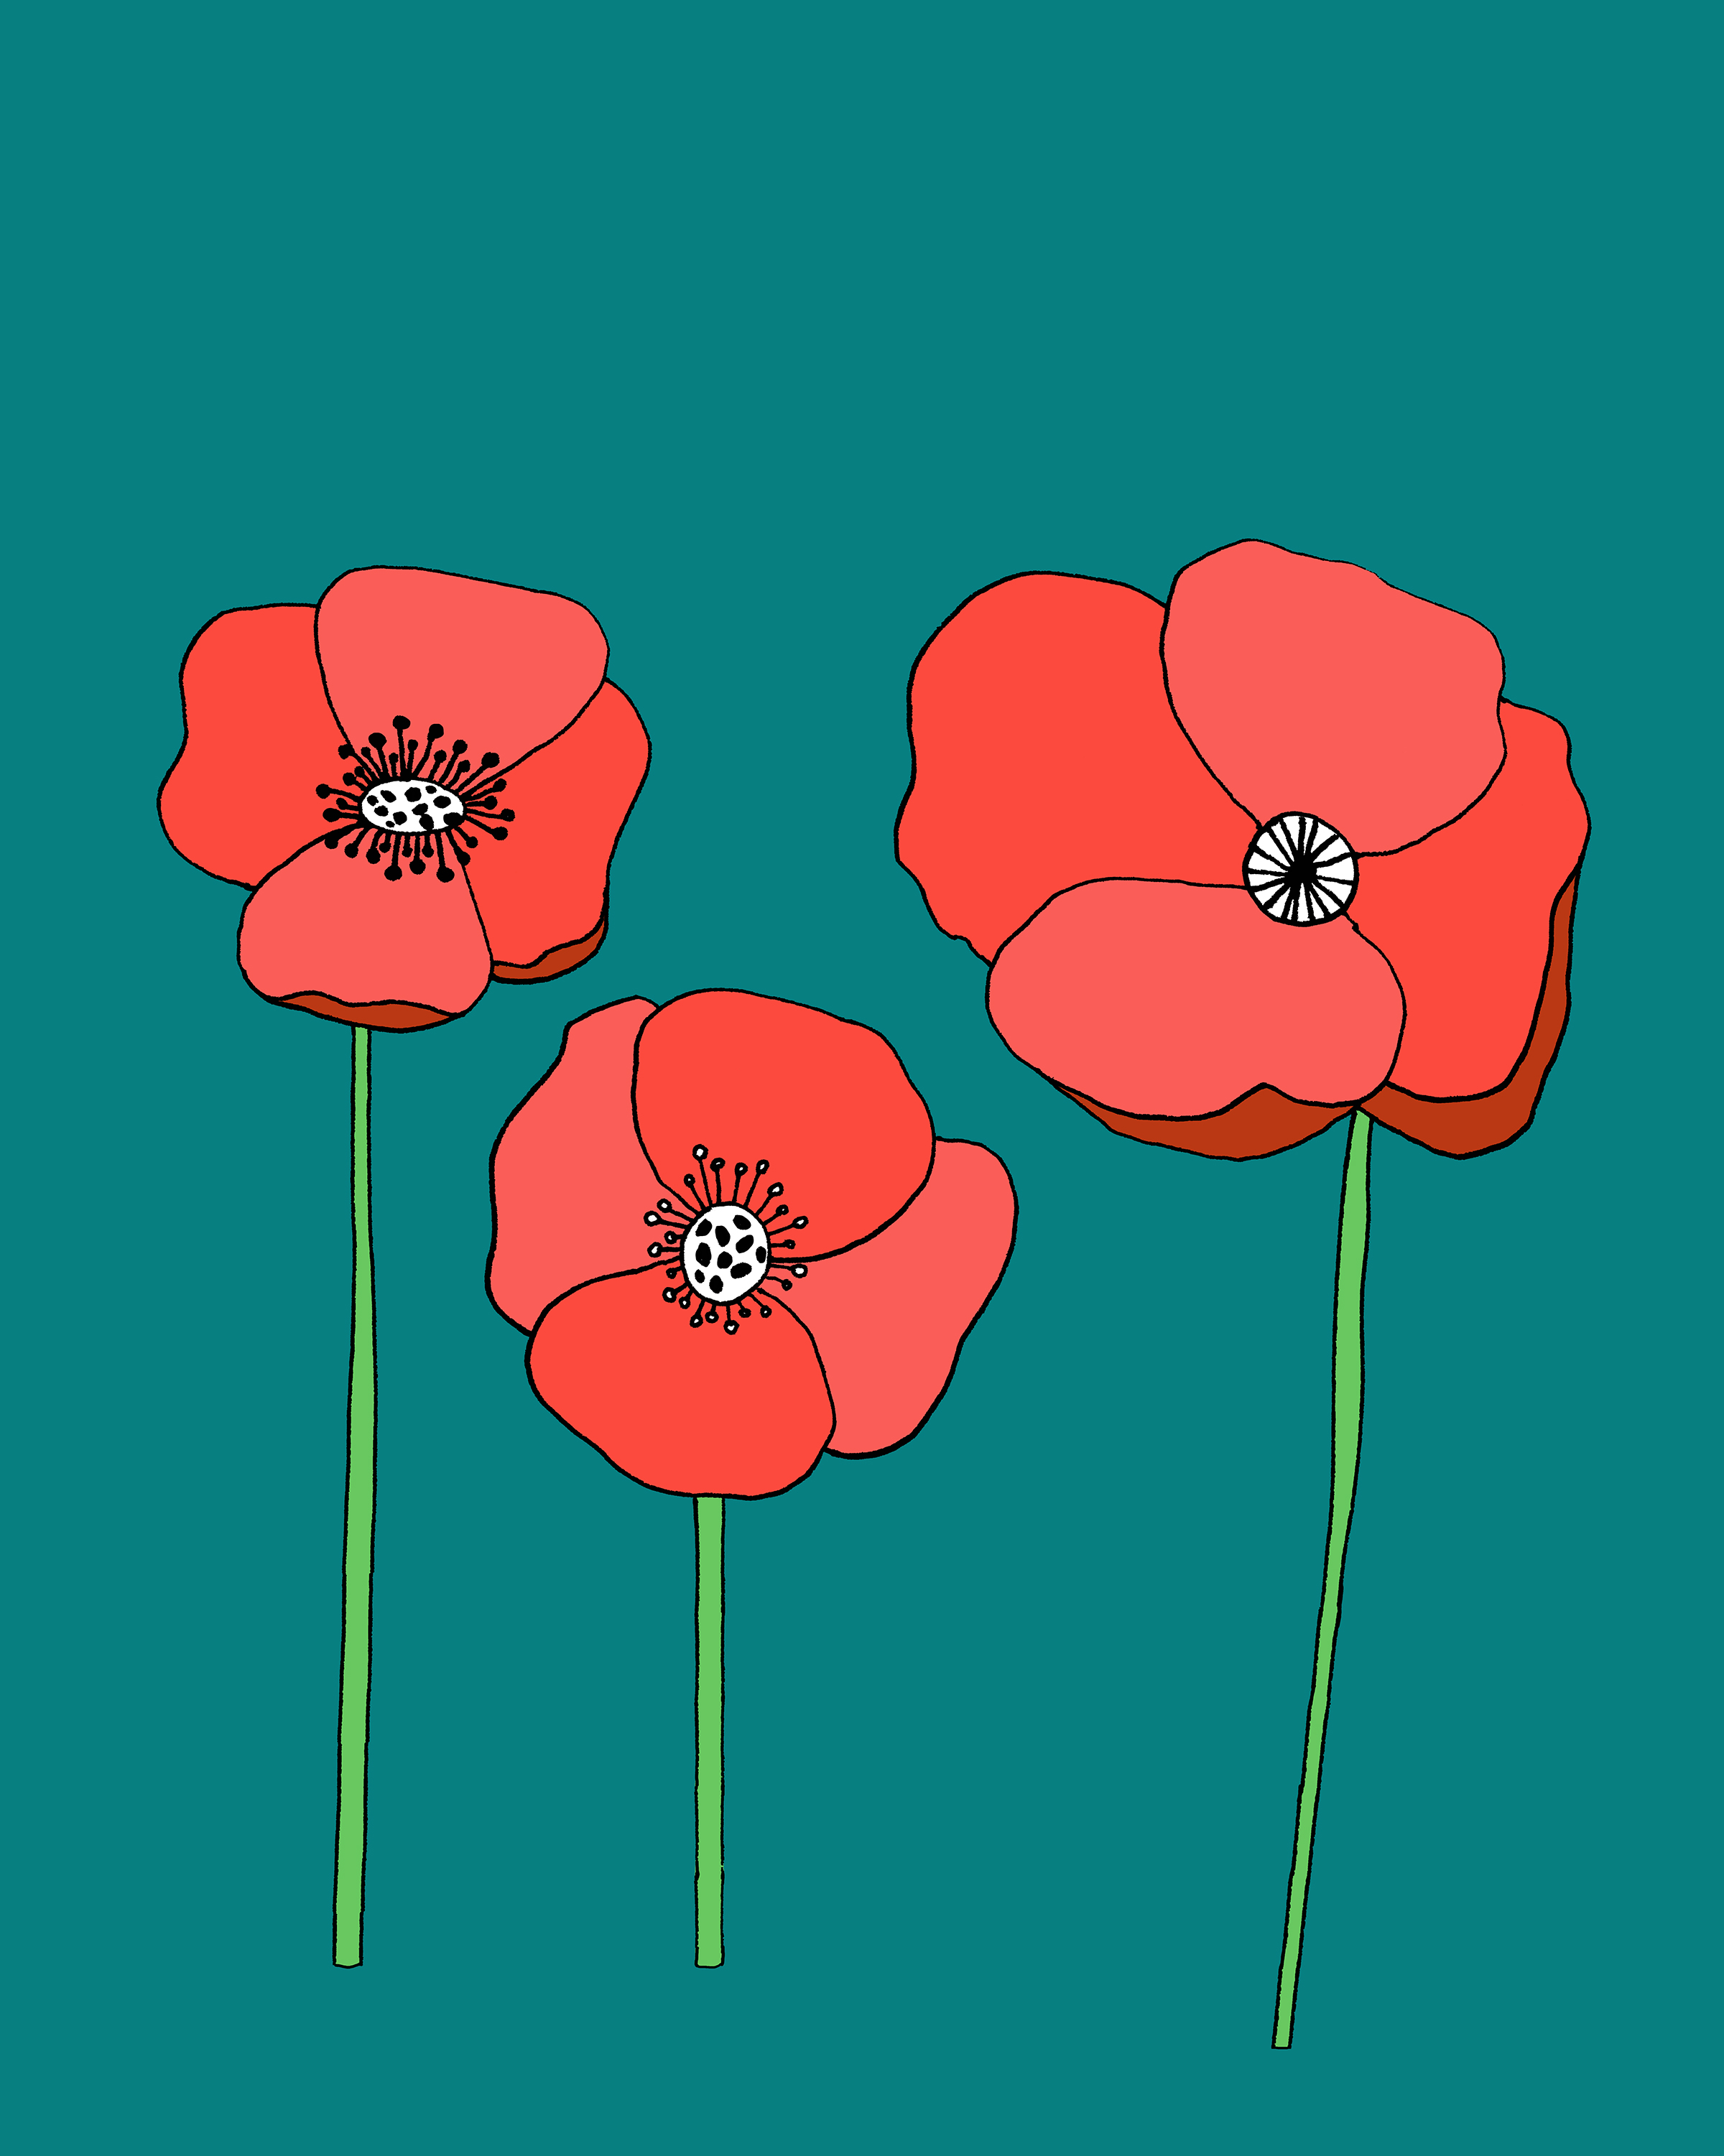 Poppies_v3_web.jpg